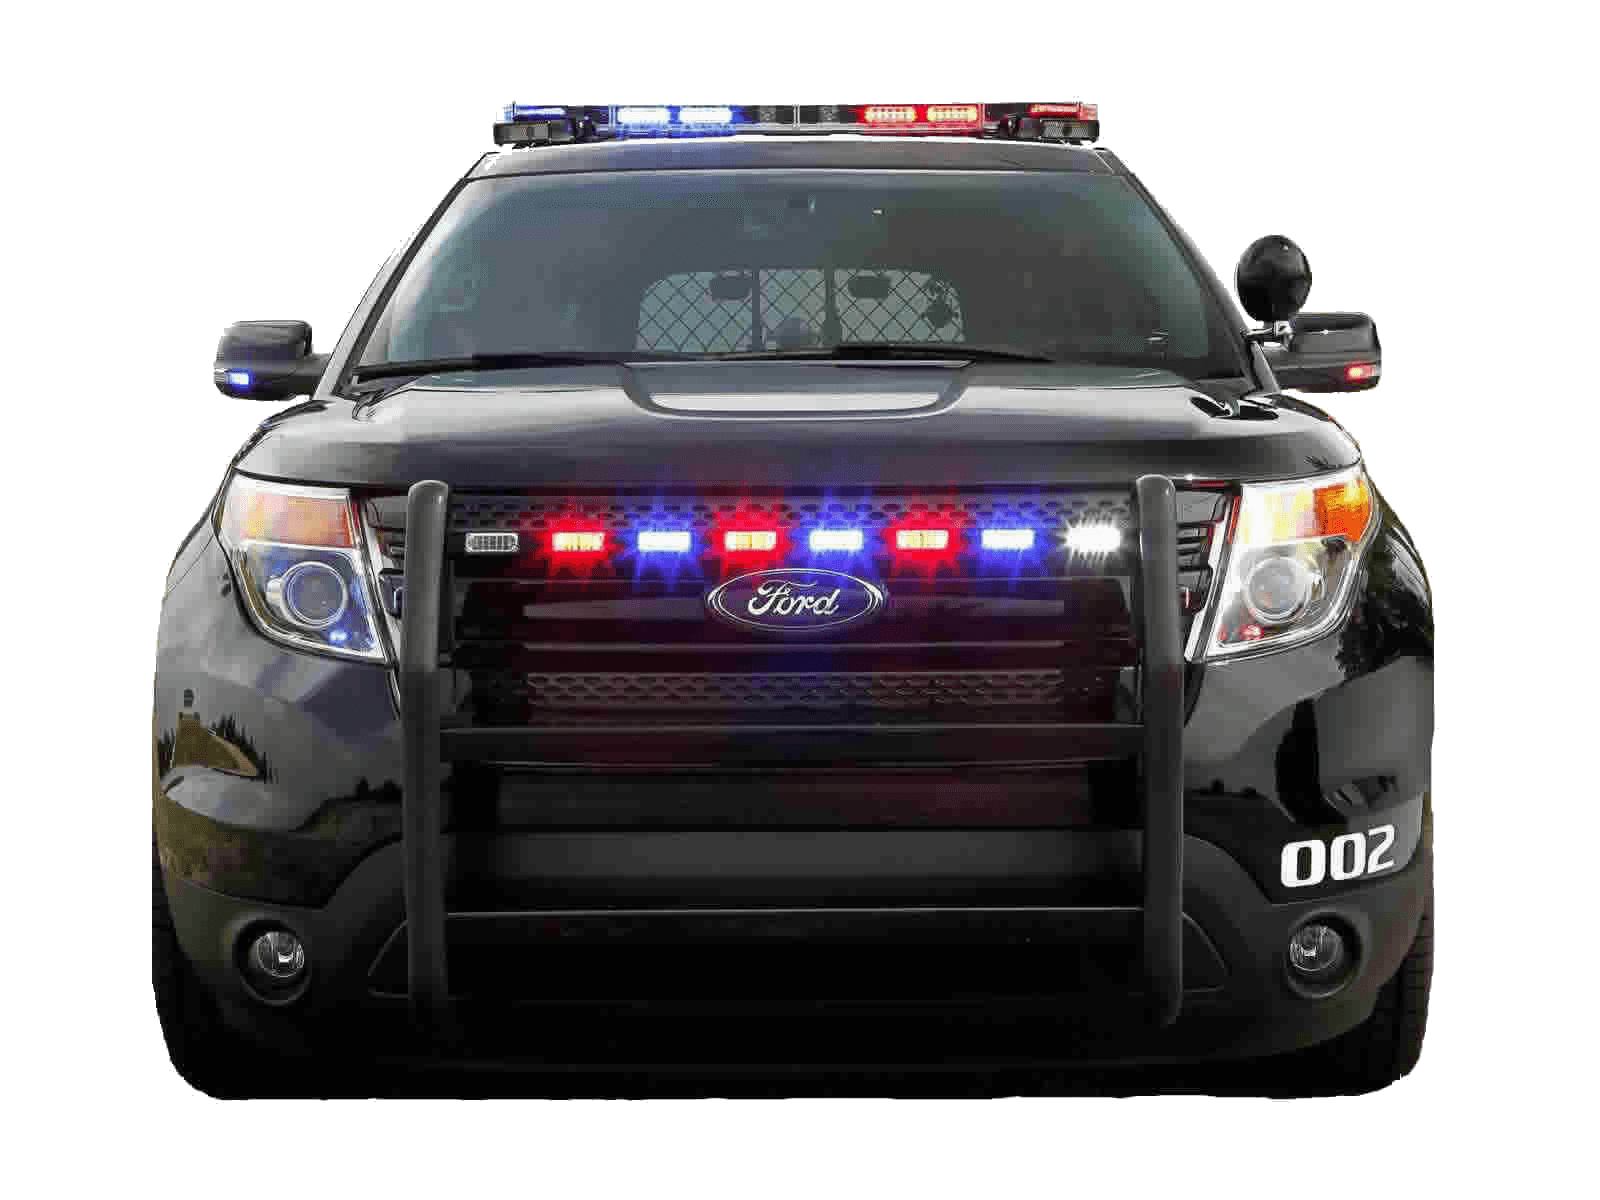 Download - Police Car HD PNG